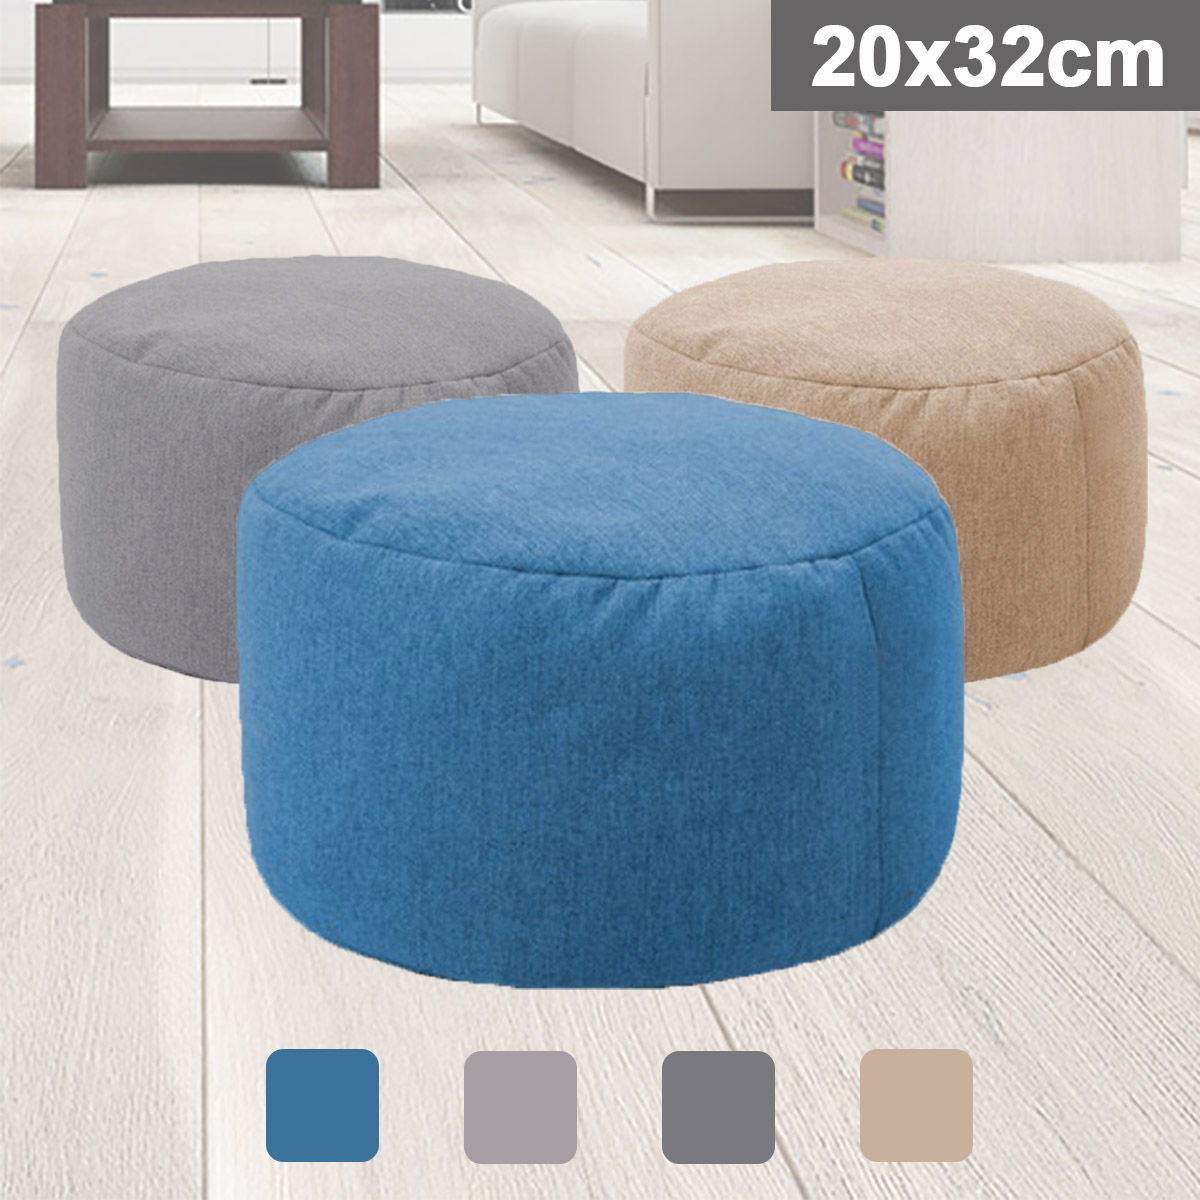 Small Round Beanbag Sofas Cover Waterproof Gaming Bed Chair Seat Bean Bag Solid Color Lounger Chair Sofa Cotton Linen Chair Cove image